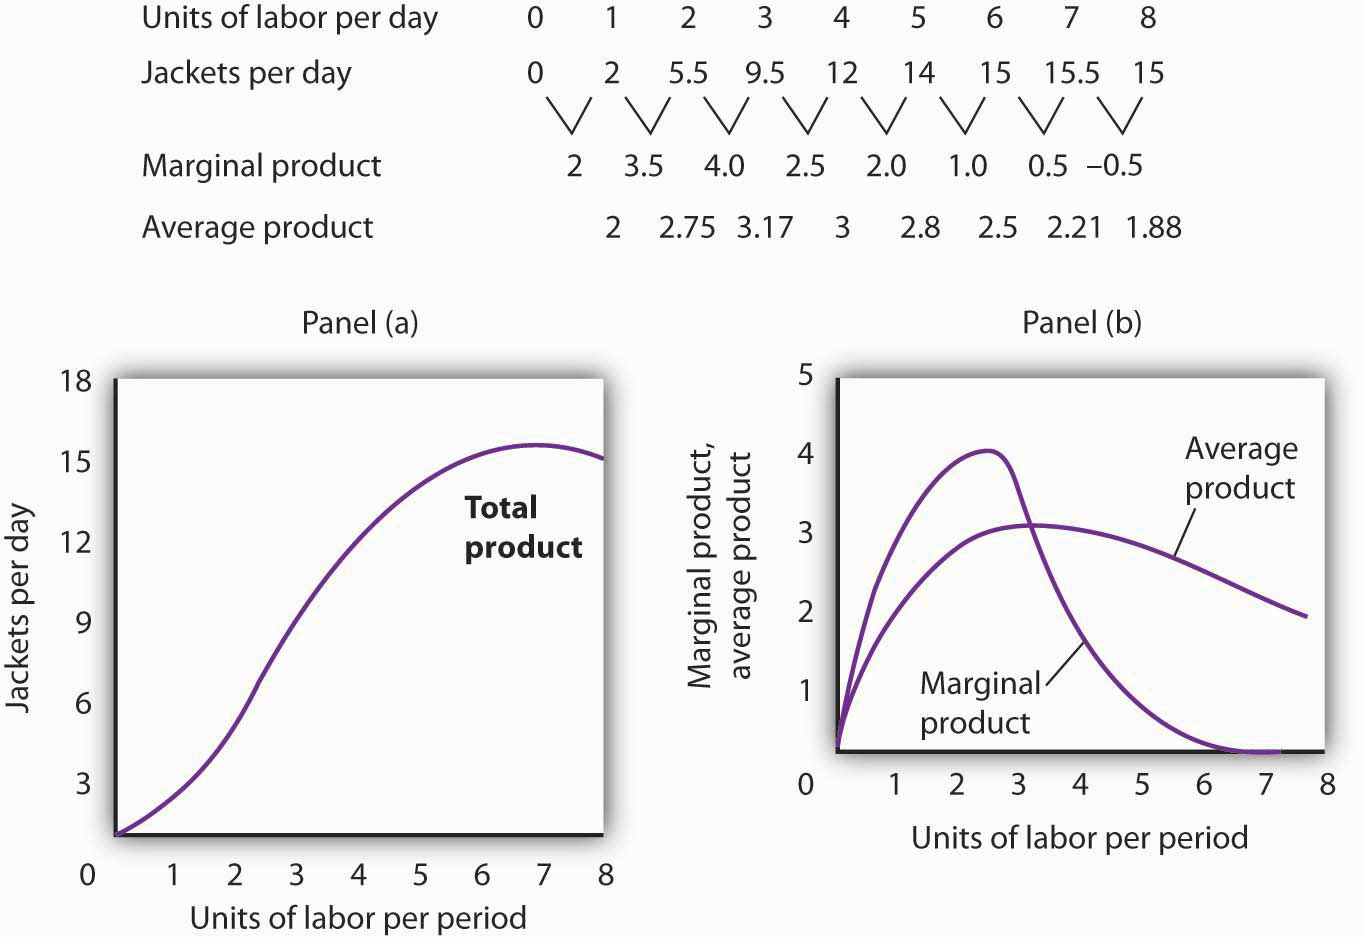 Units of labor per day, jackets per day, marginal product, average product